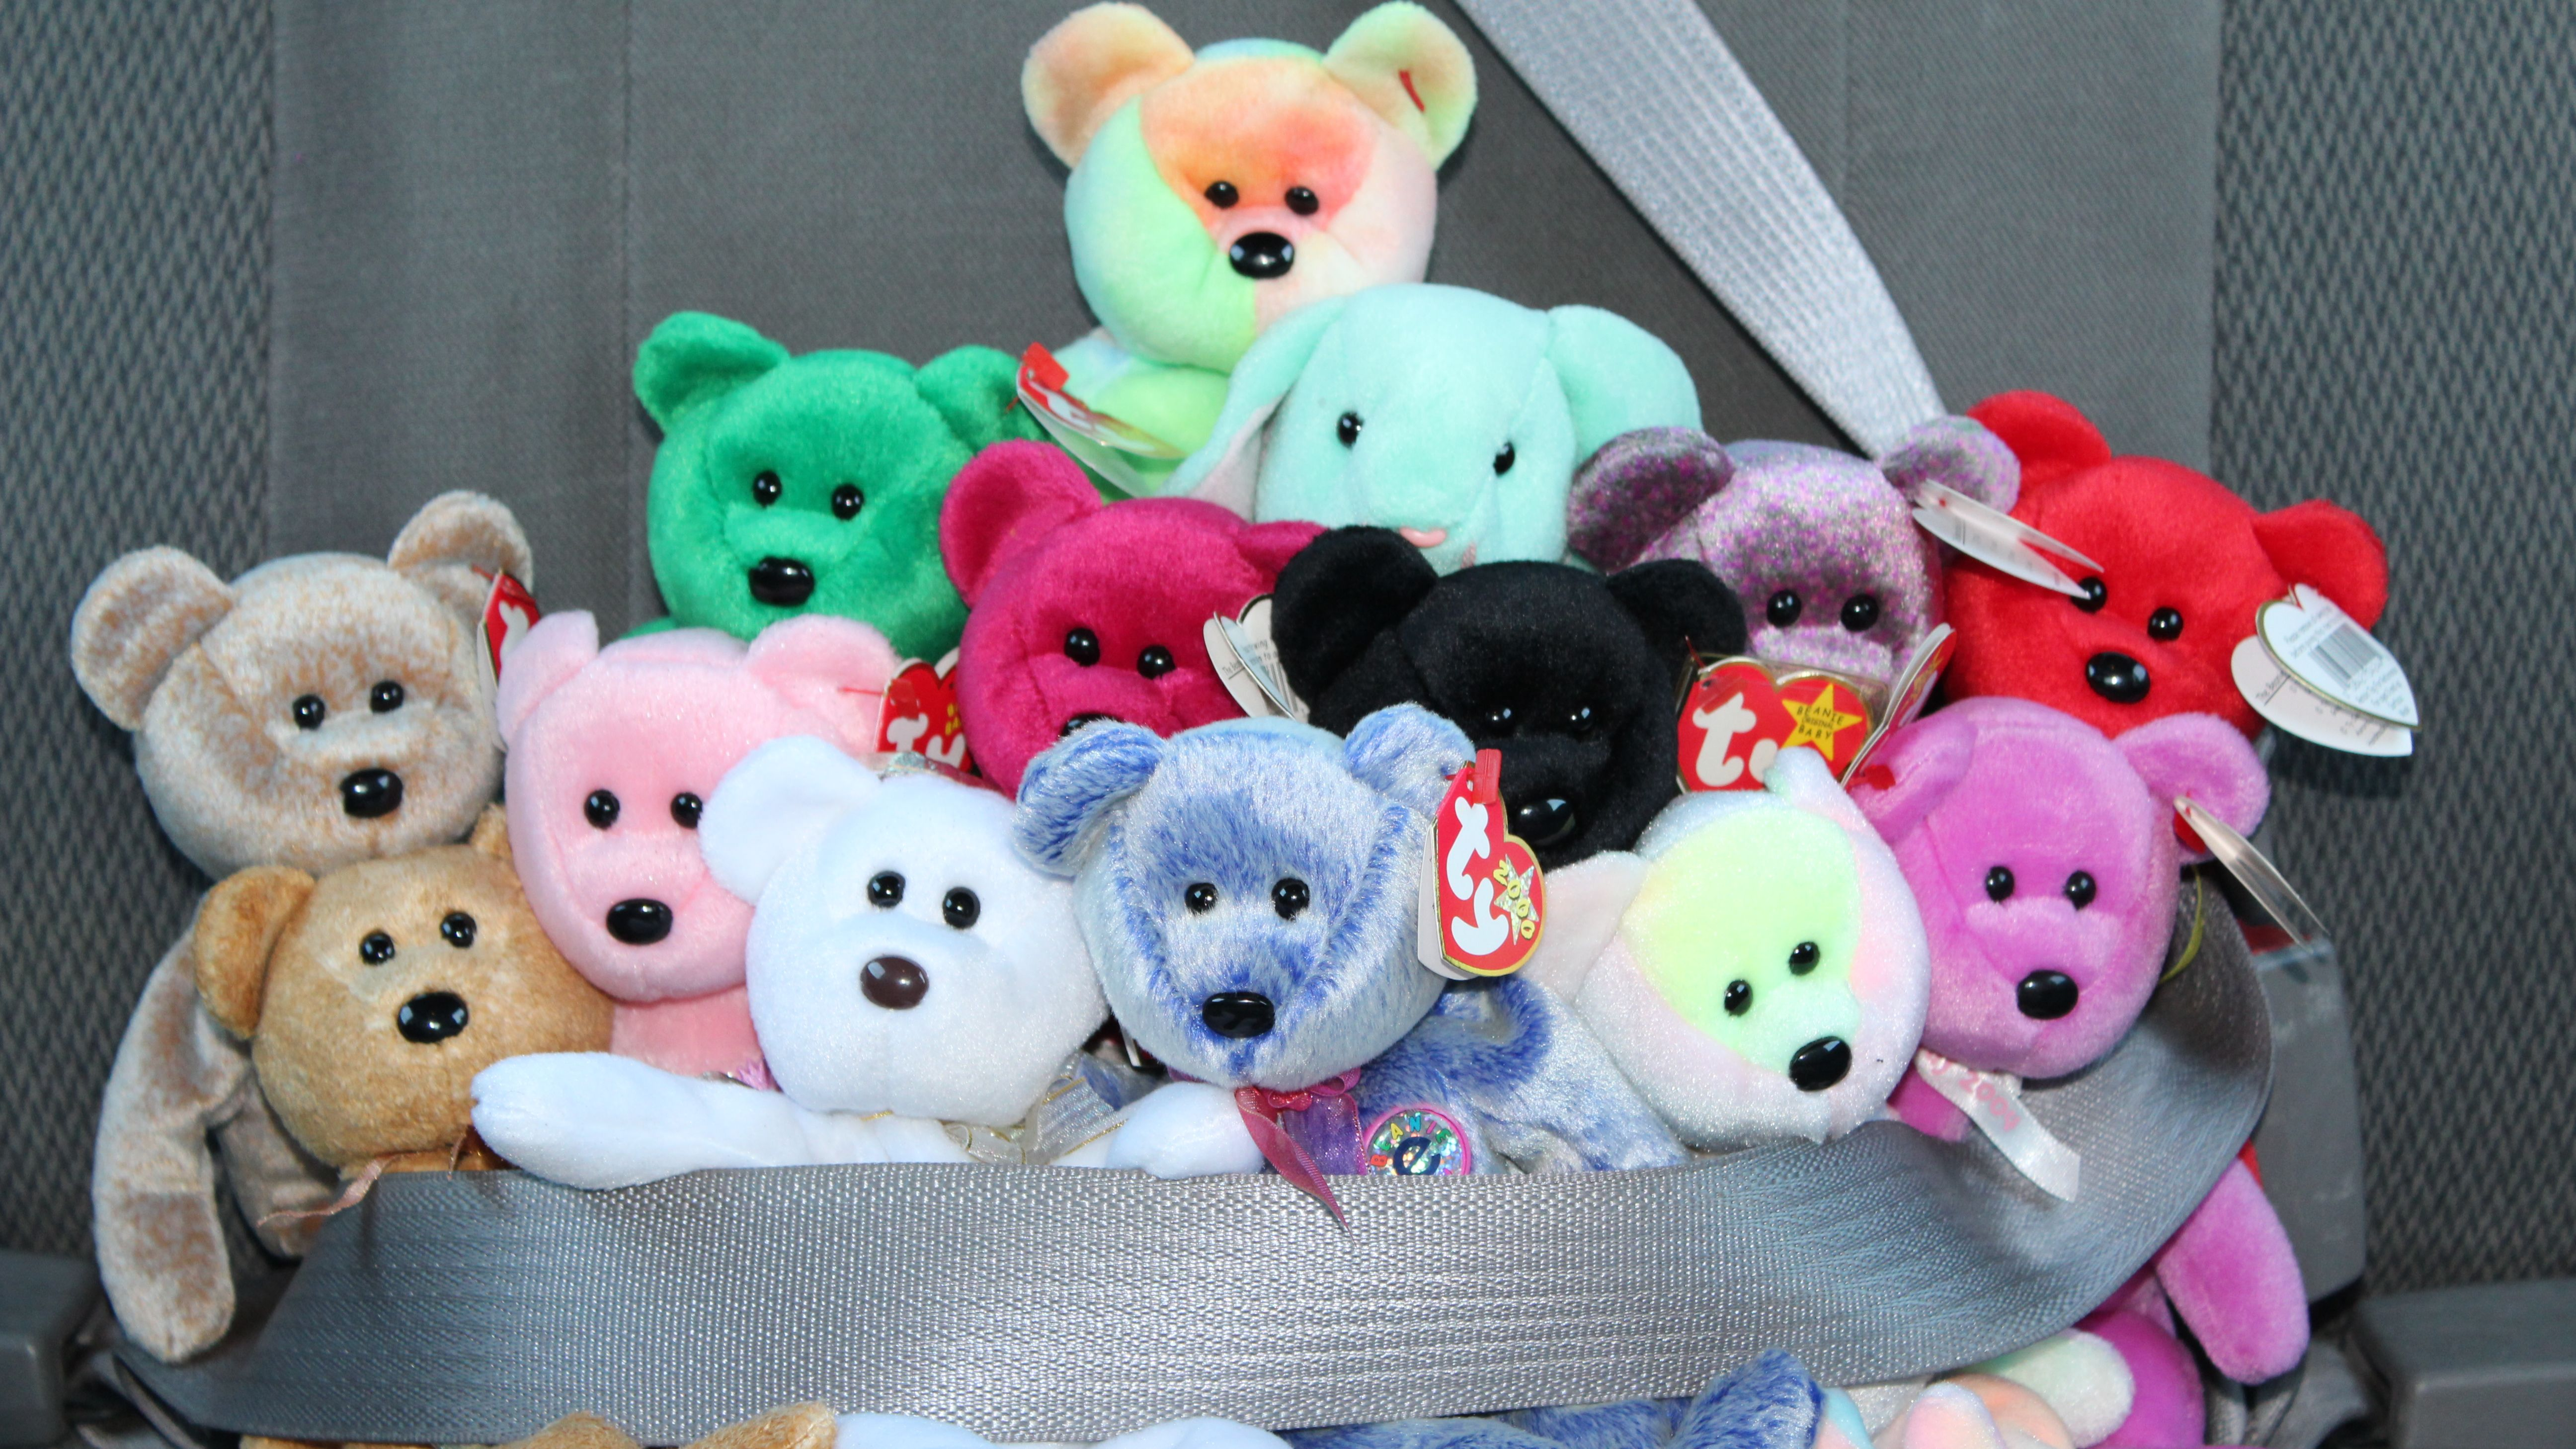 image relating to Beanie Baby Checklist Printable named The 10 Maximum Worthwhile Beanie Toddlers That Could possibly Be Hiding within just